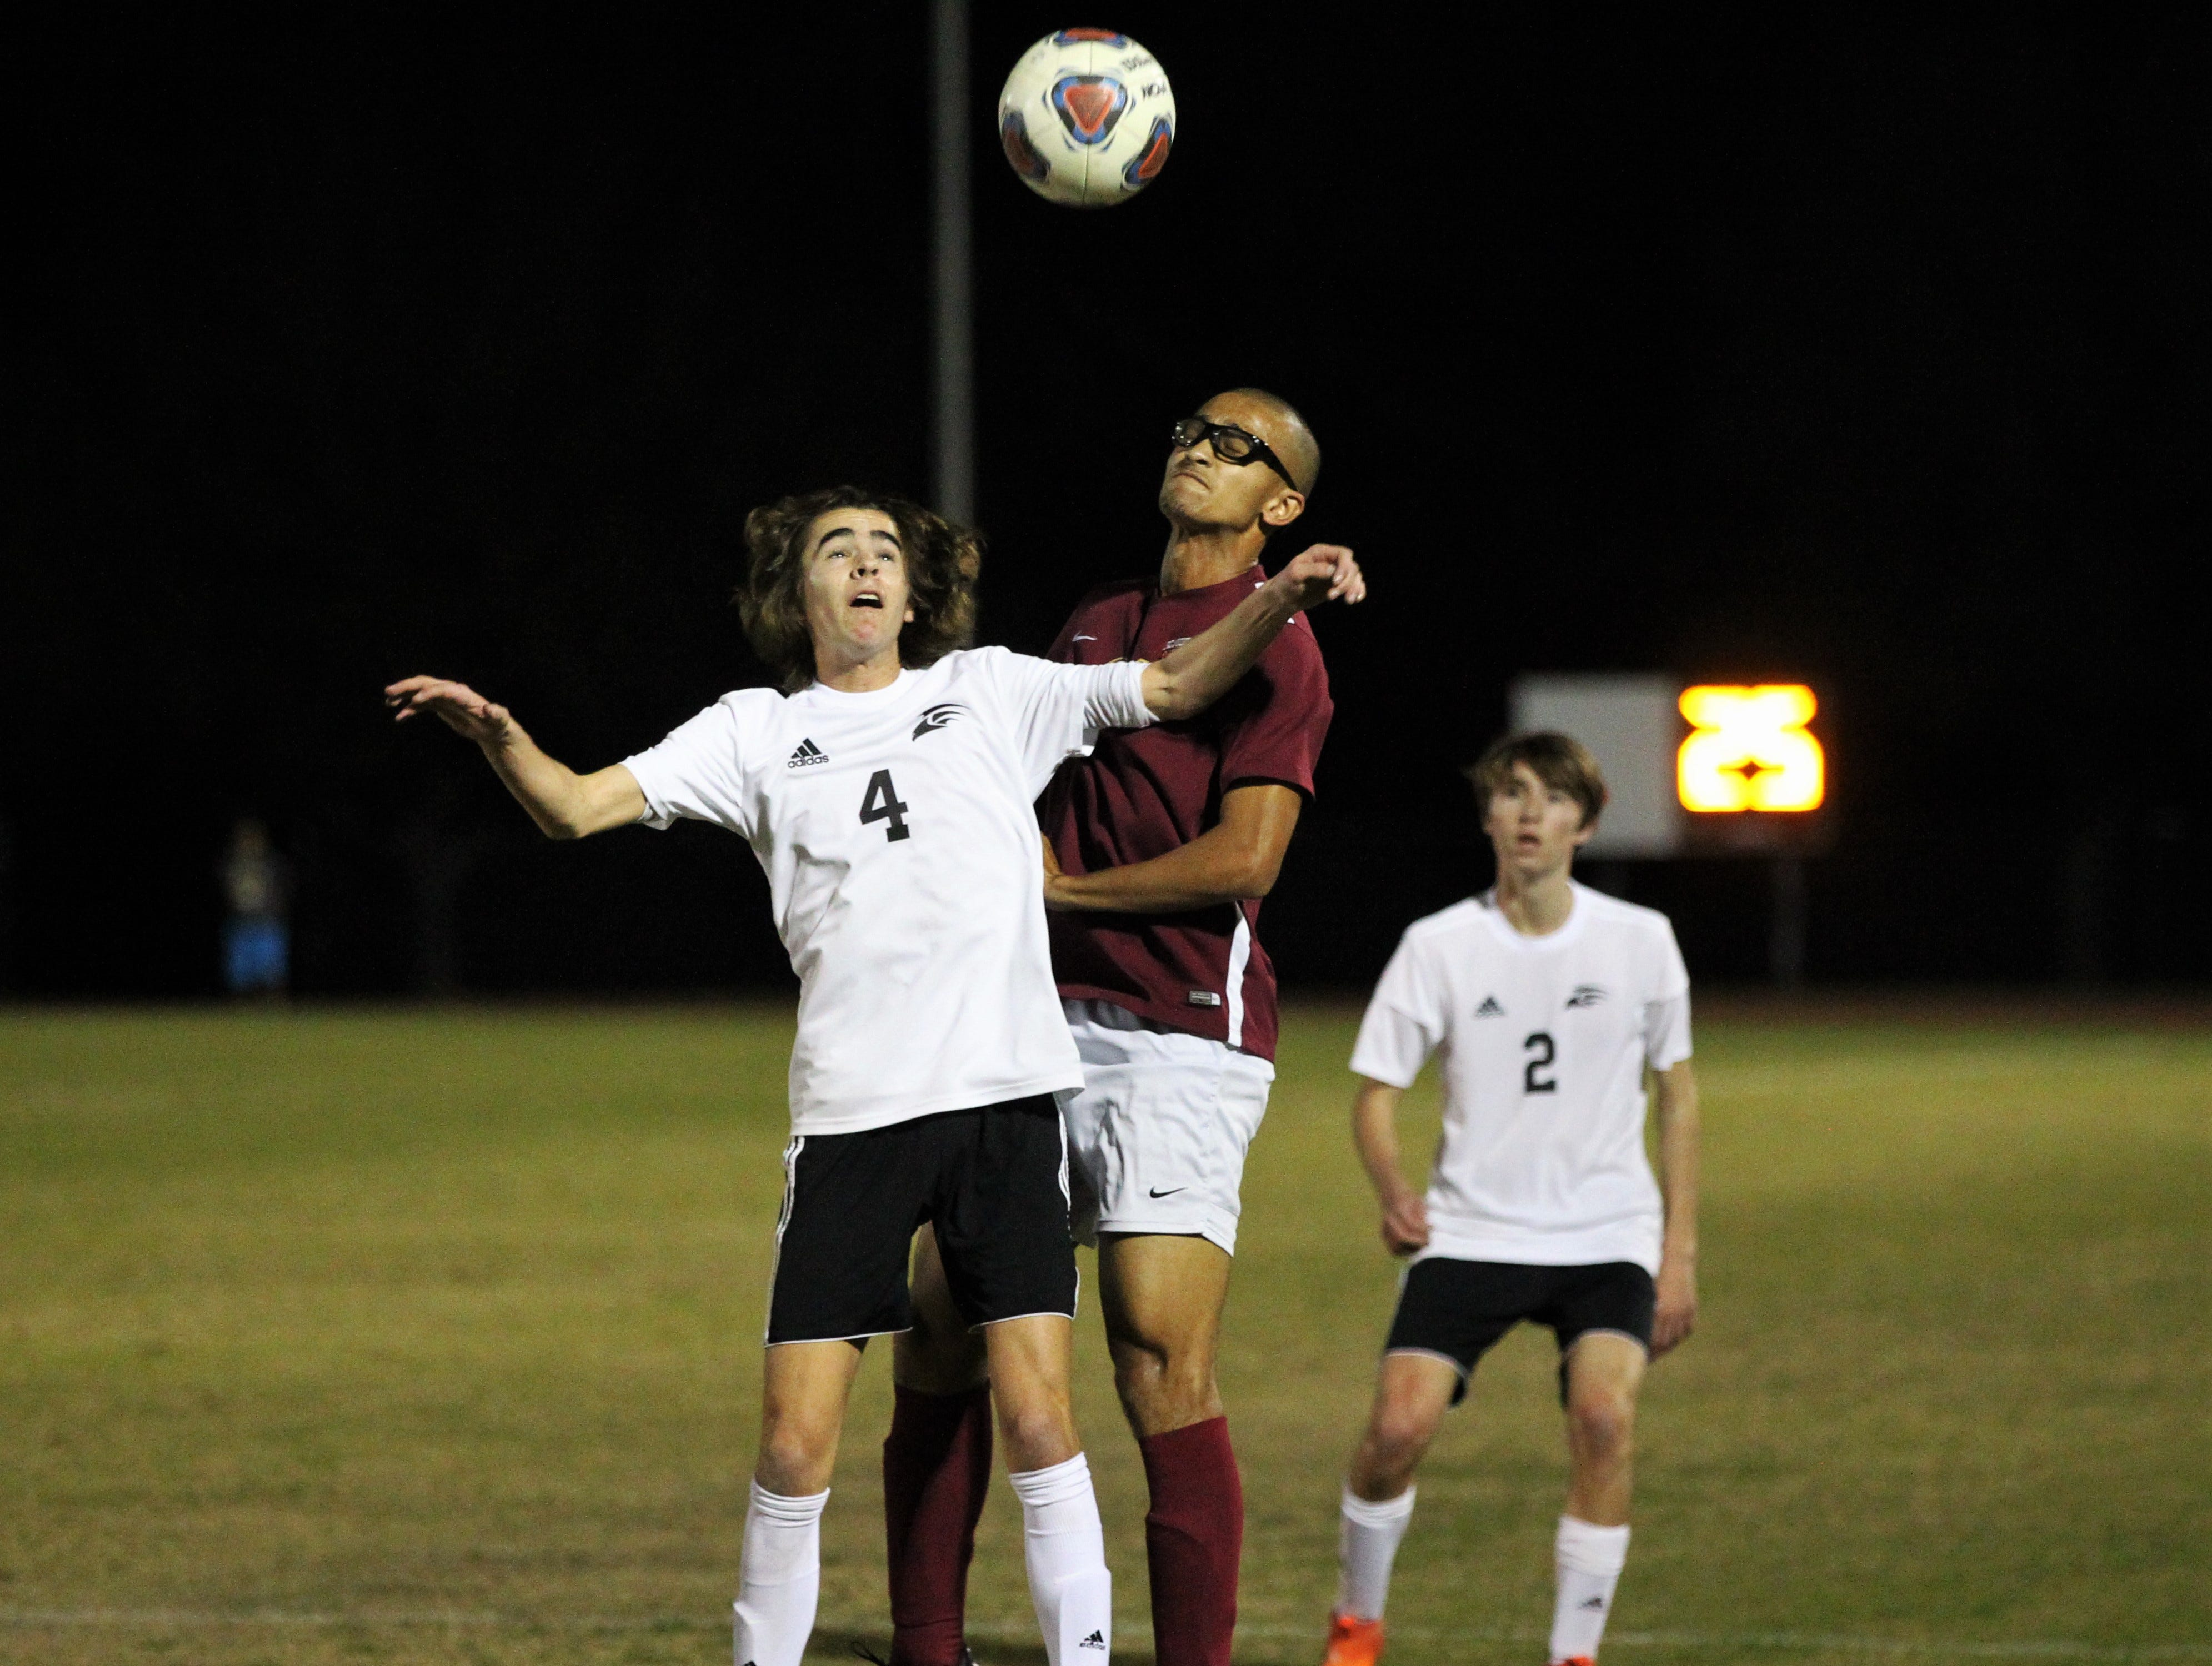 Florida High's Kelan Simmons goes up for a 50/50 ball as Florida High's boys soccer team beat South Walton 2-0 during a Region 1-2A quarterfinal on Feb. 6, 2018.